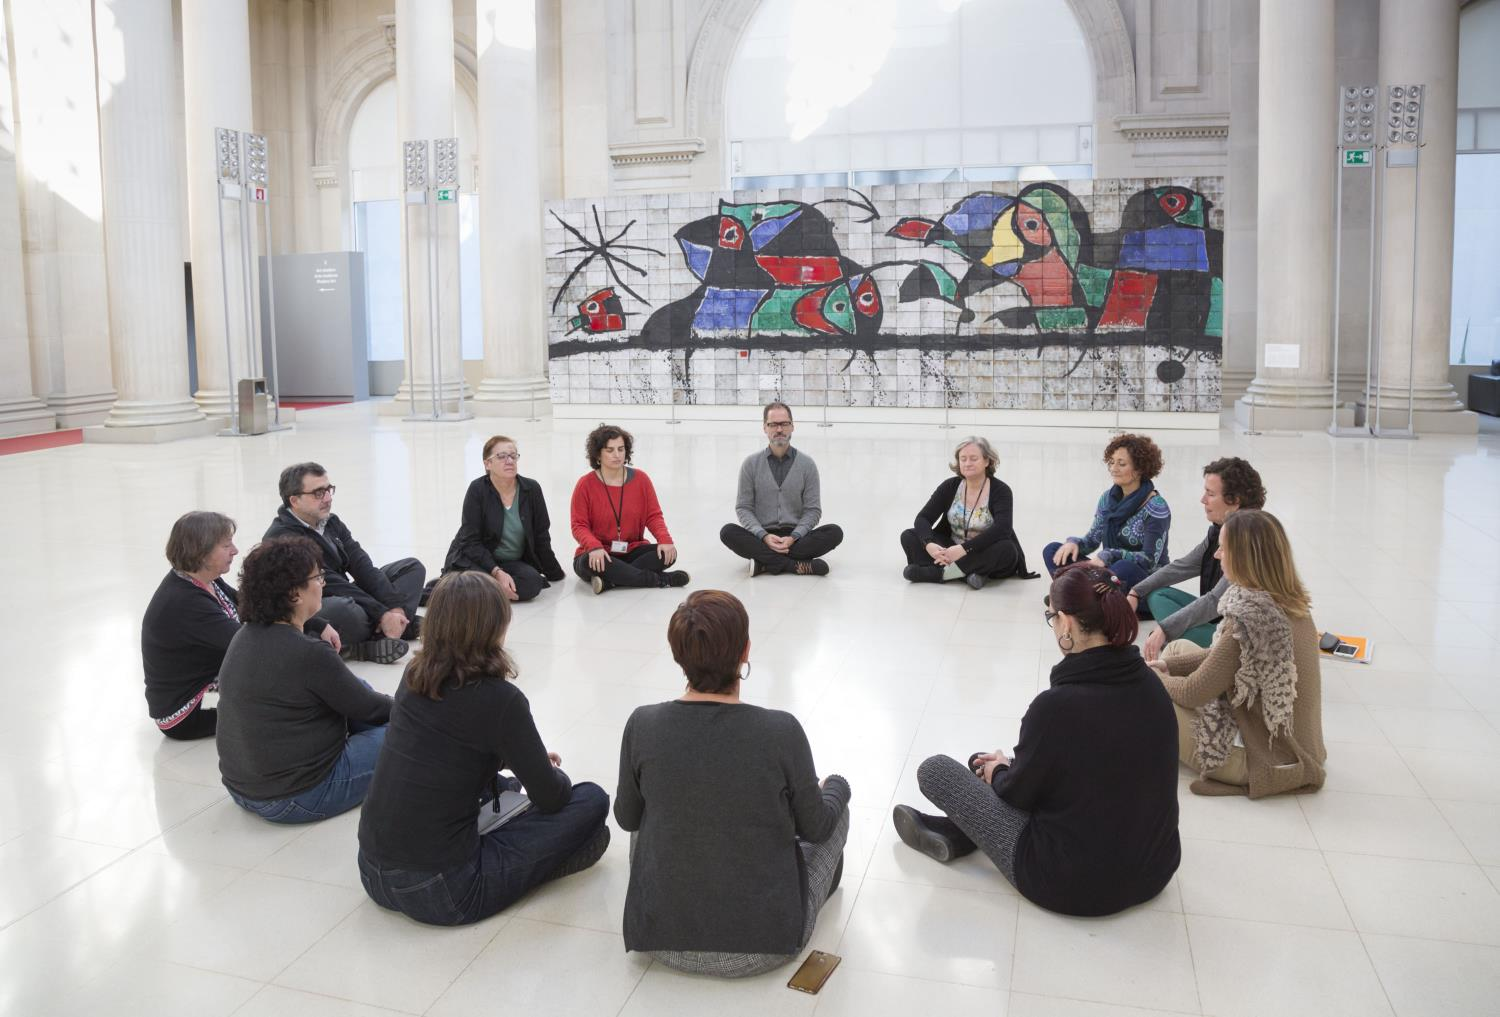 Mindfulness in the Museu Nacional